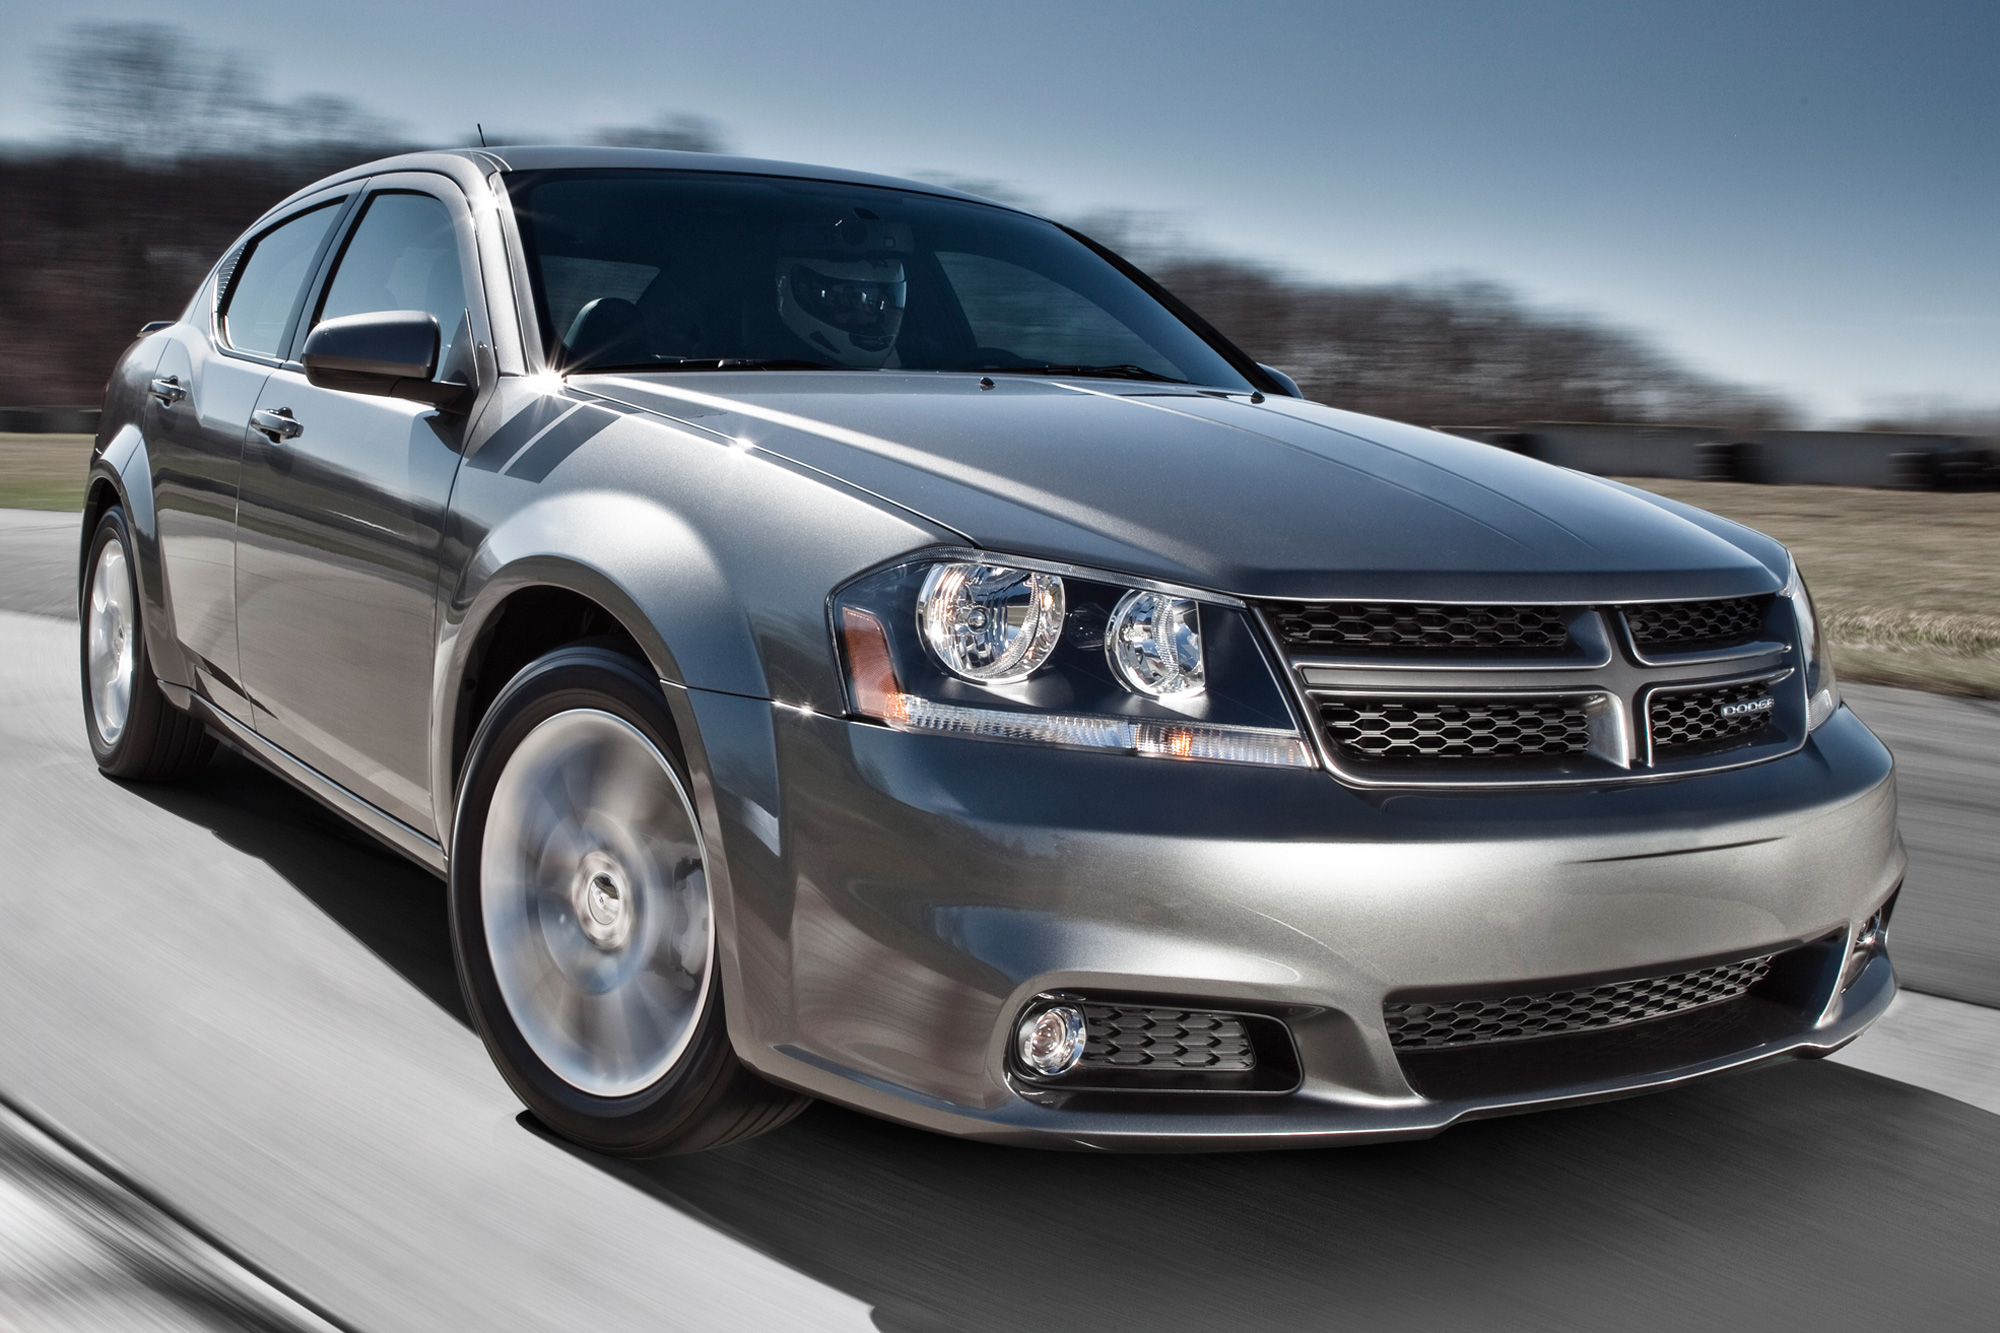 Dodge avenger photo - 2